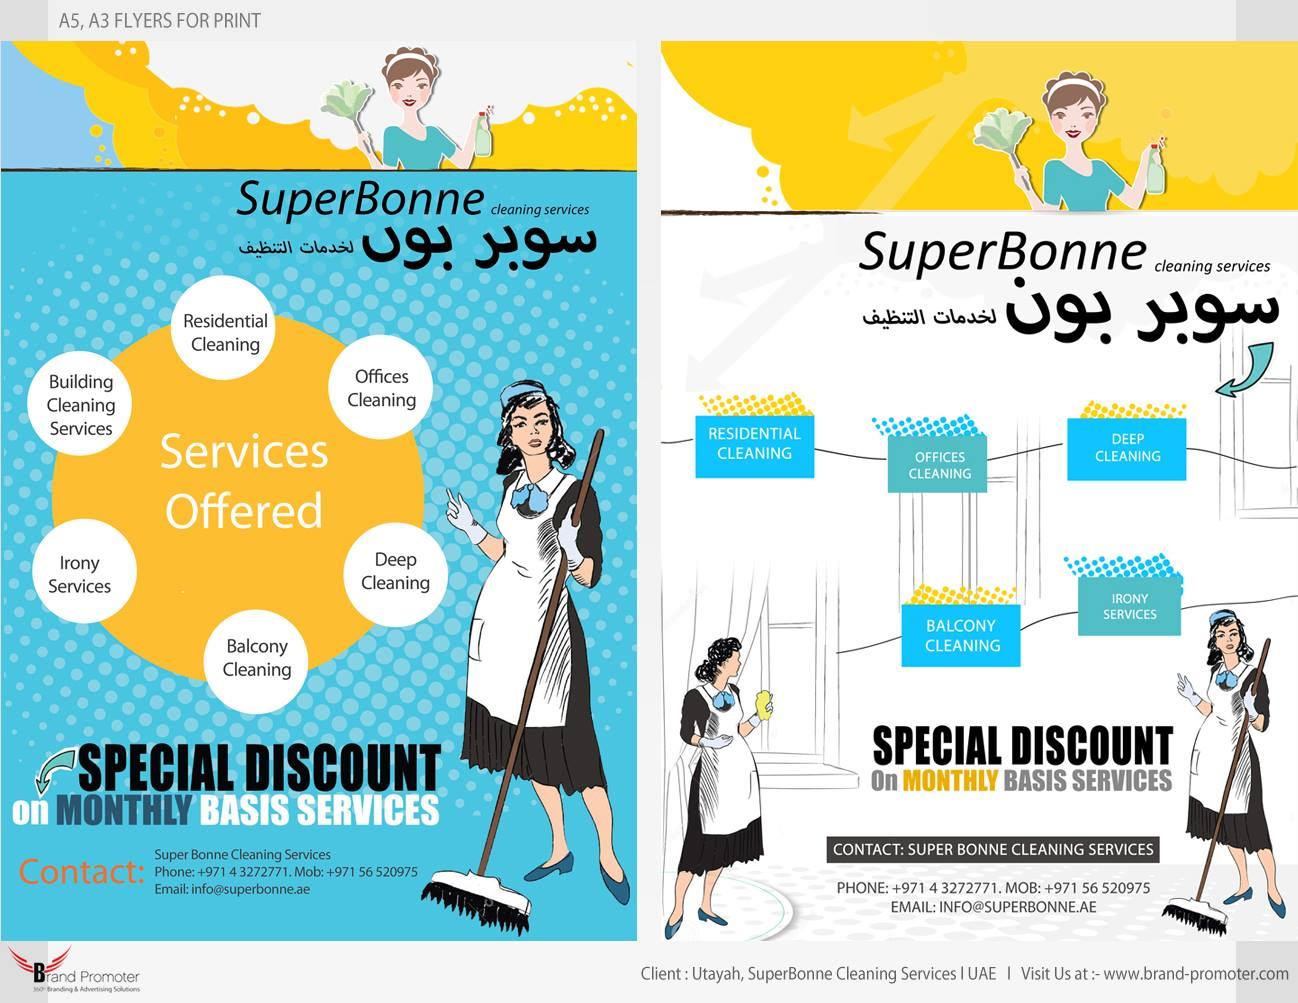 brand promoter 2016 print entity design flyers a3 a5 mailers brochure l client utayah superbonne cleaning services uae l us at brand promoter com l